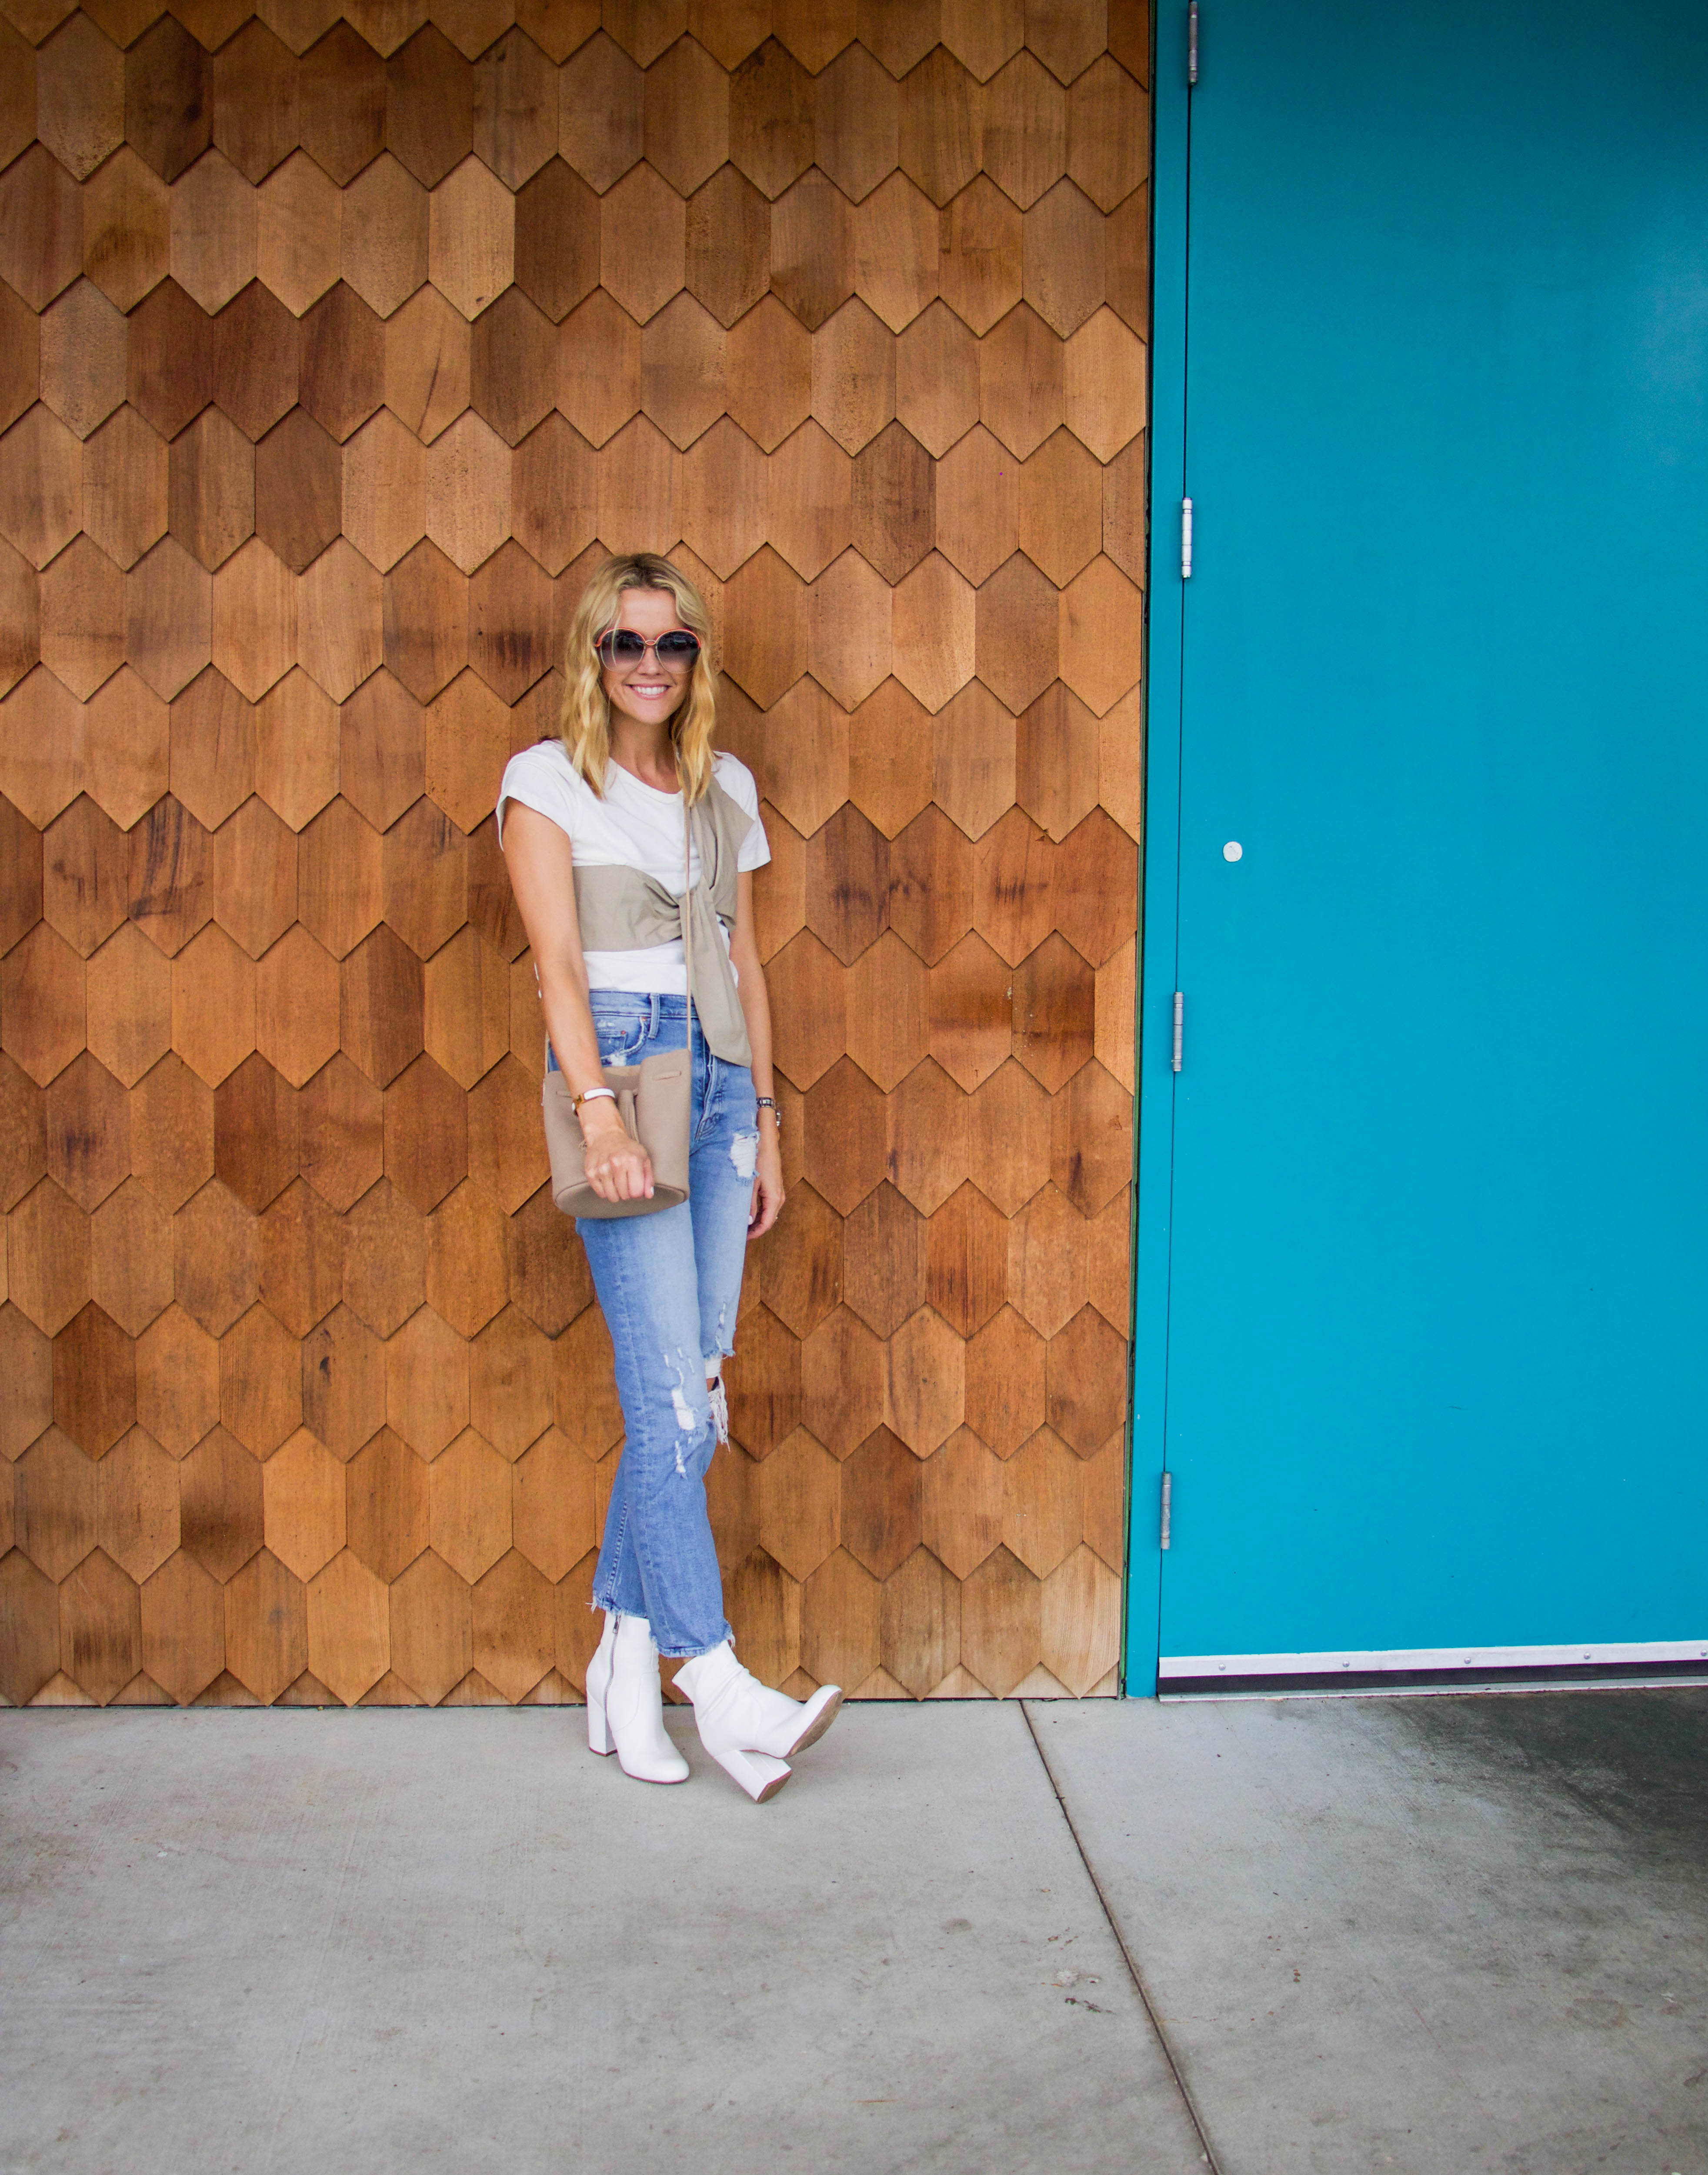 L. Avenue OOTD - not your basic white tee and my favorite jeans!